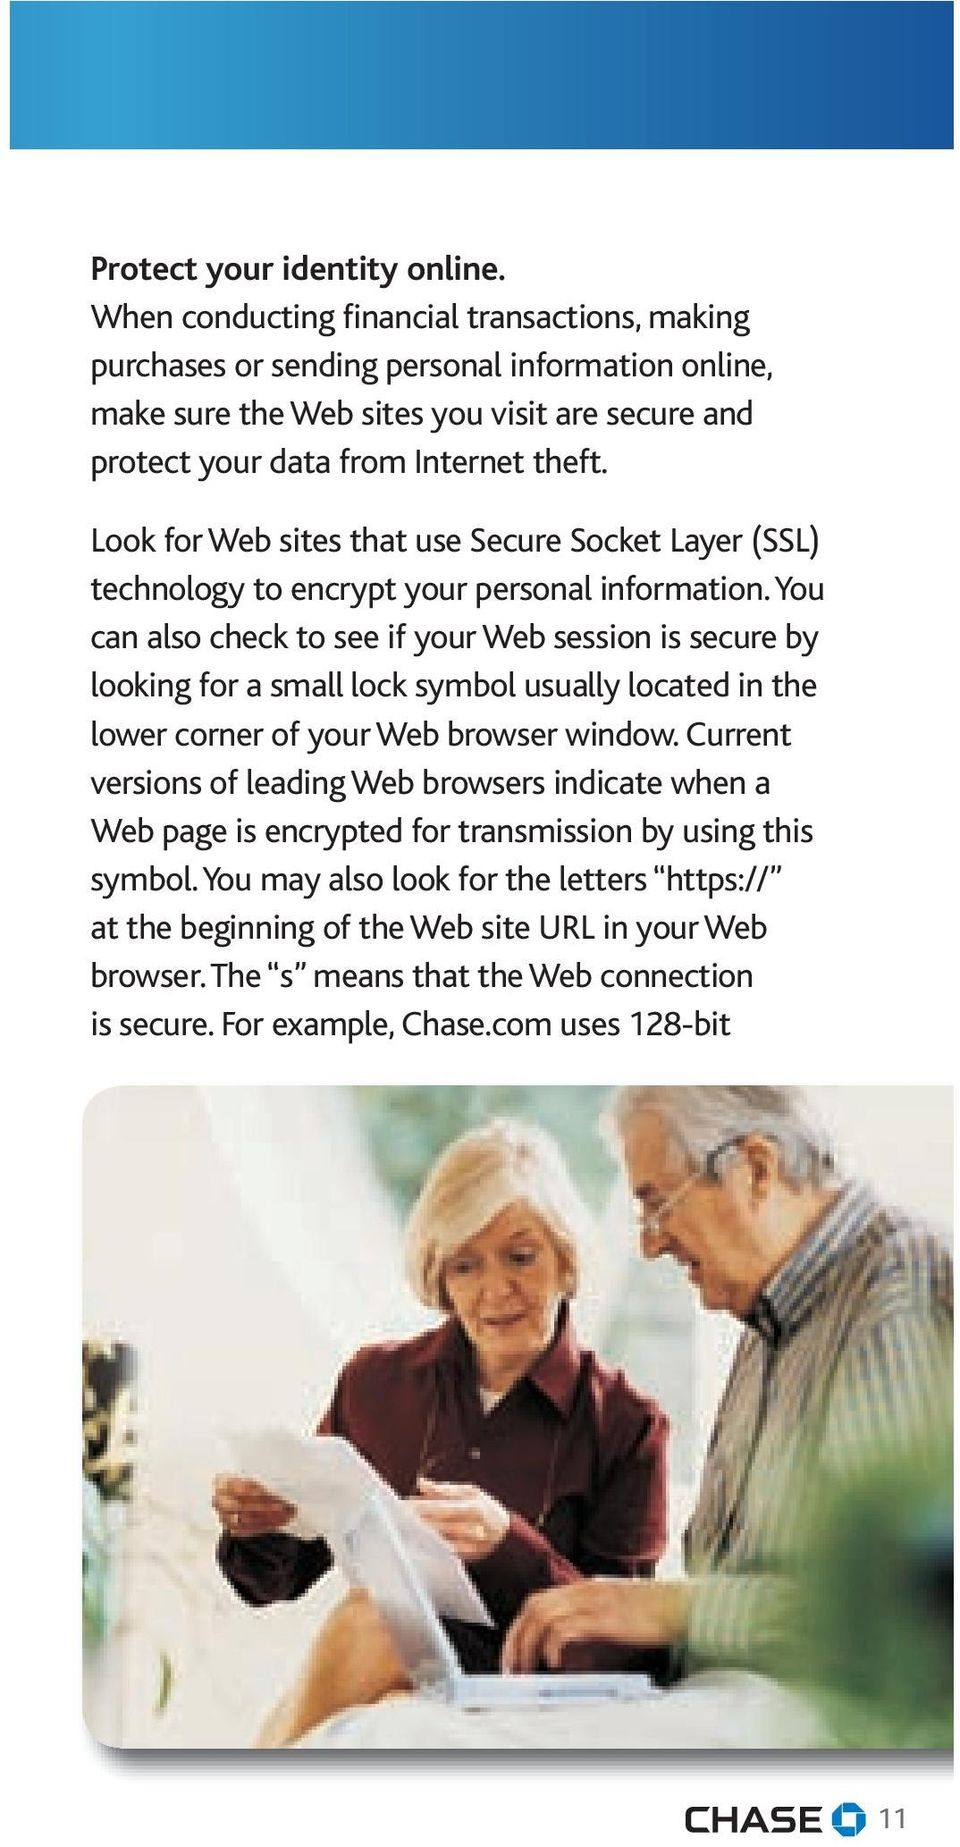 Look for Web sites that use Secure Socket Layer (SSL) technology to encrypt your personal information.